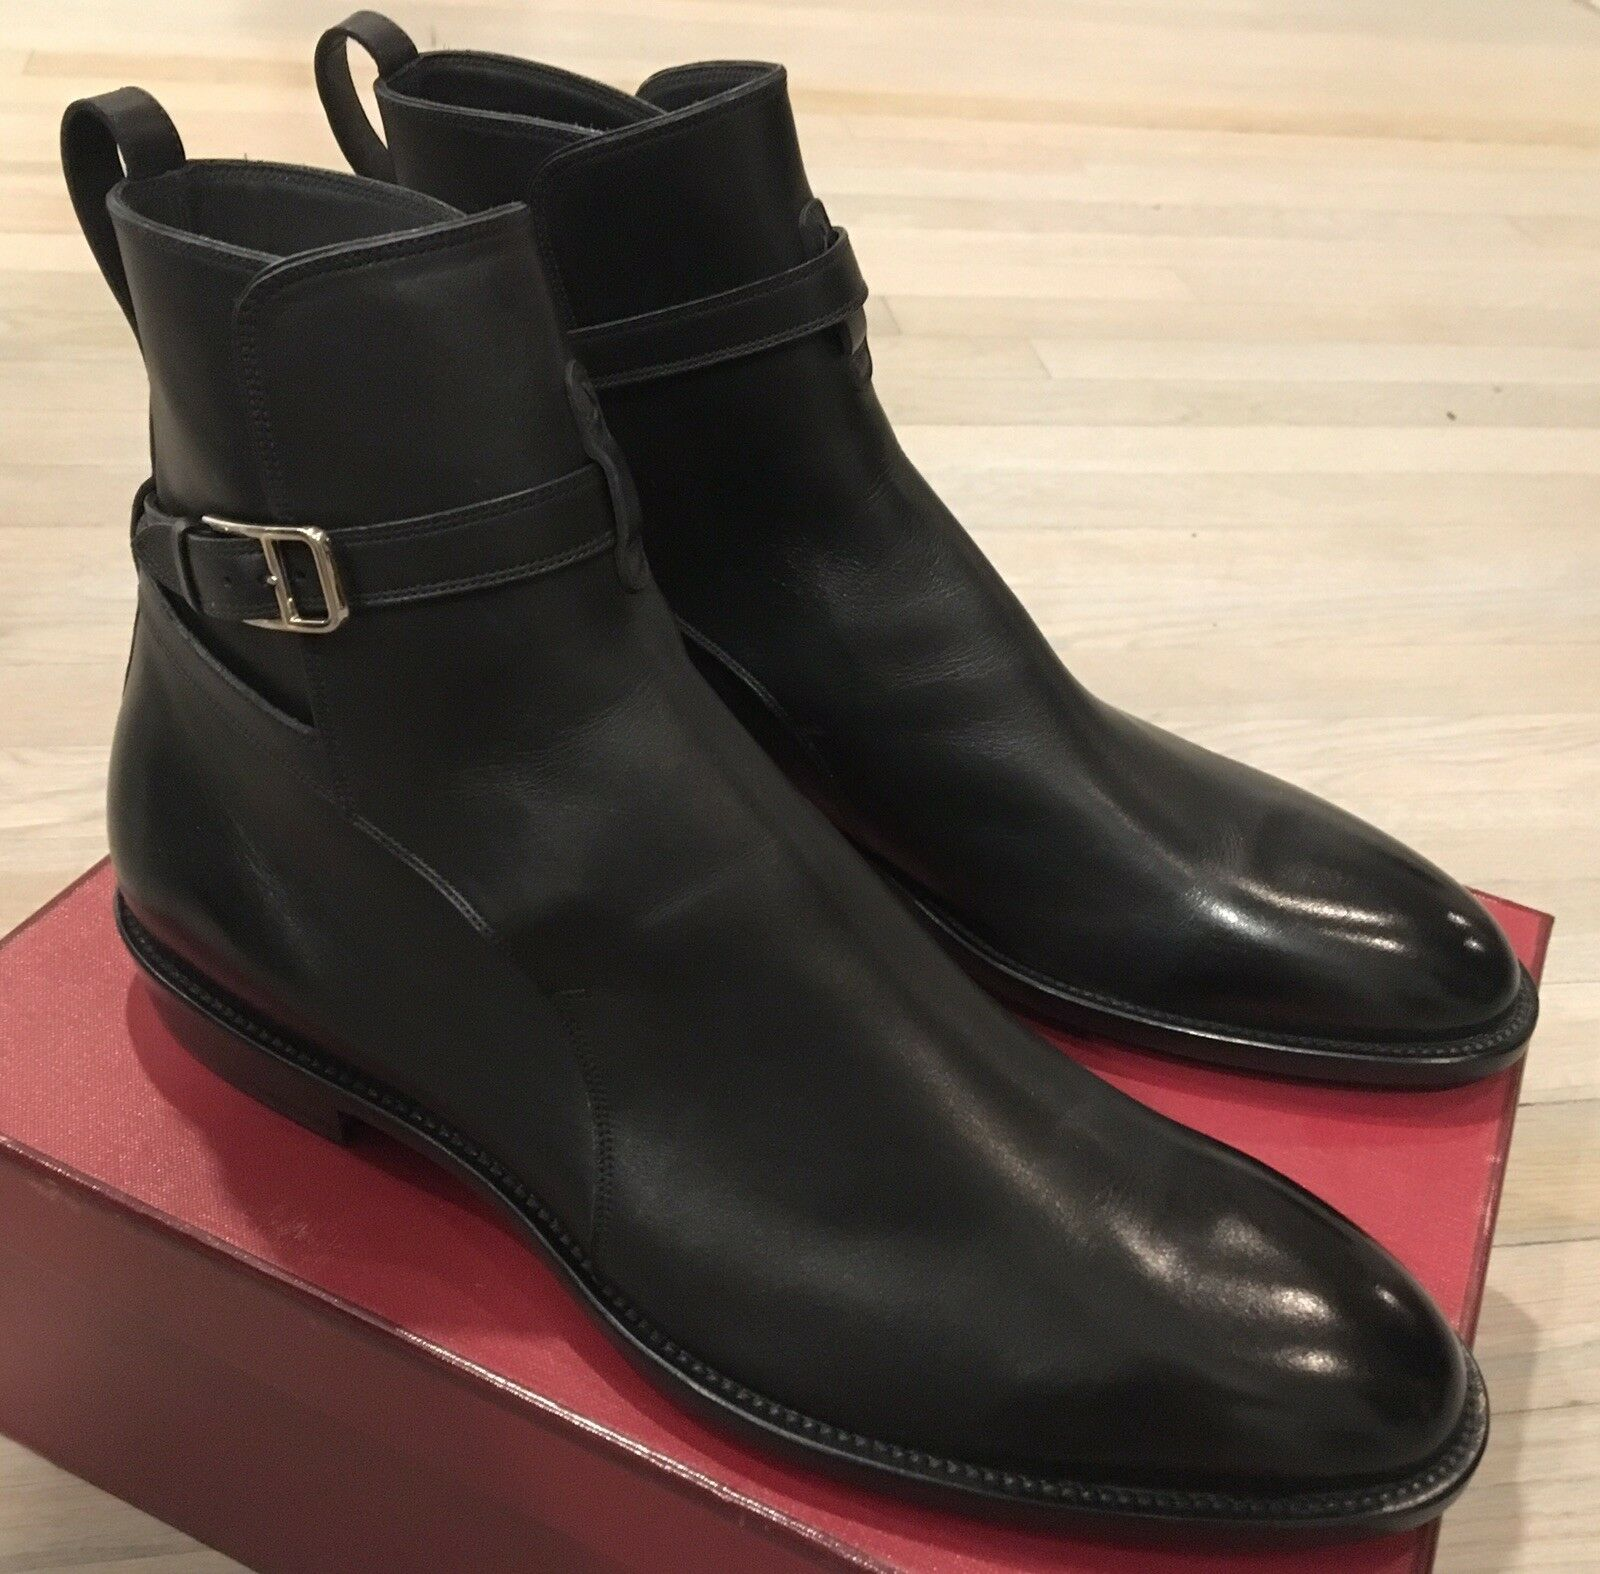 1,000  Bally Hobston Black Leather Ankle Boots Size US 10.5 Made in Switzerland